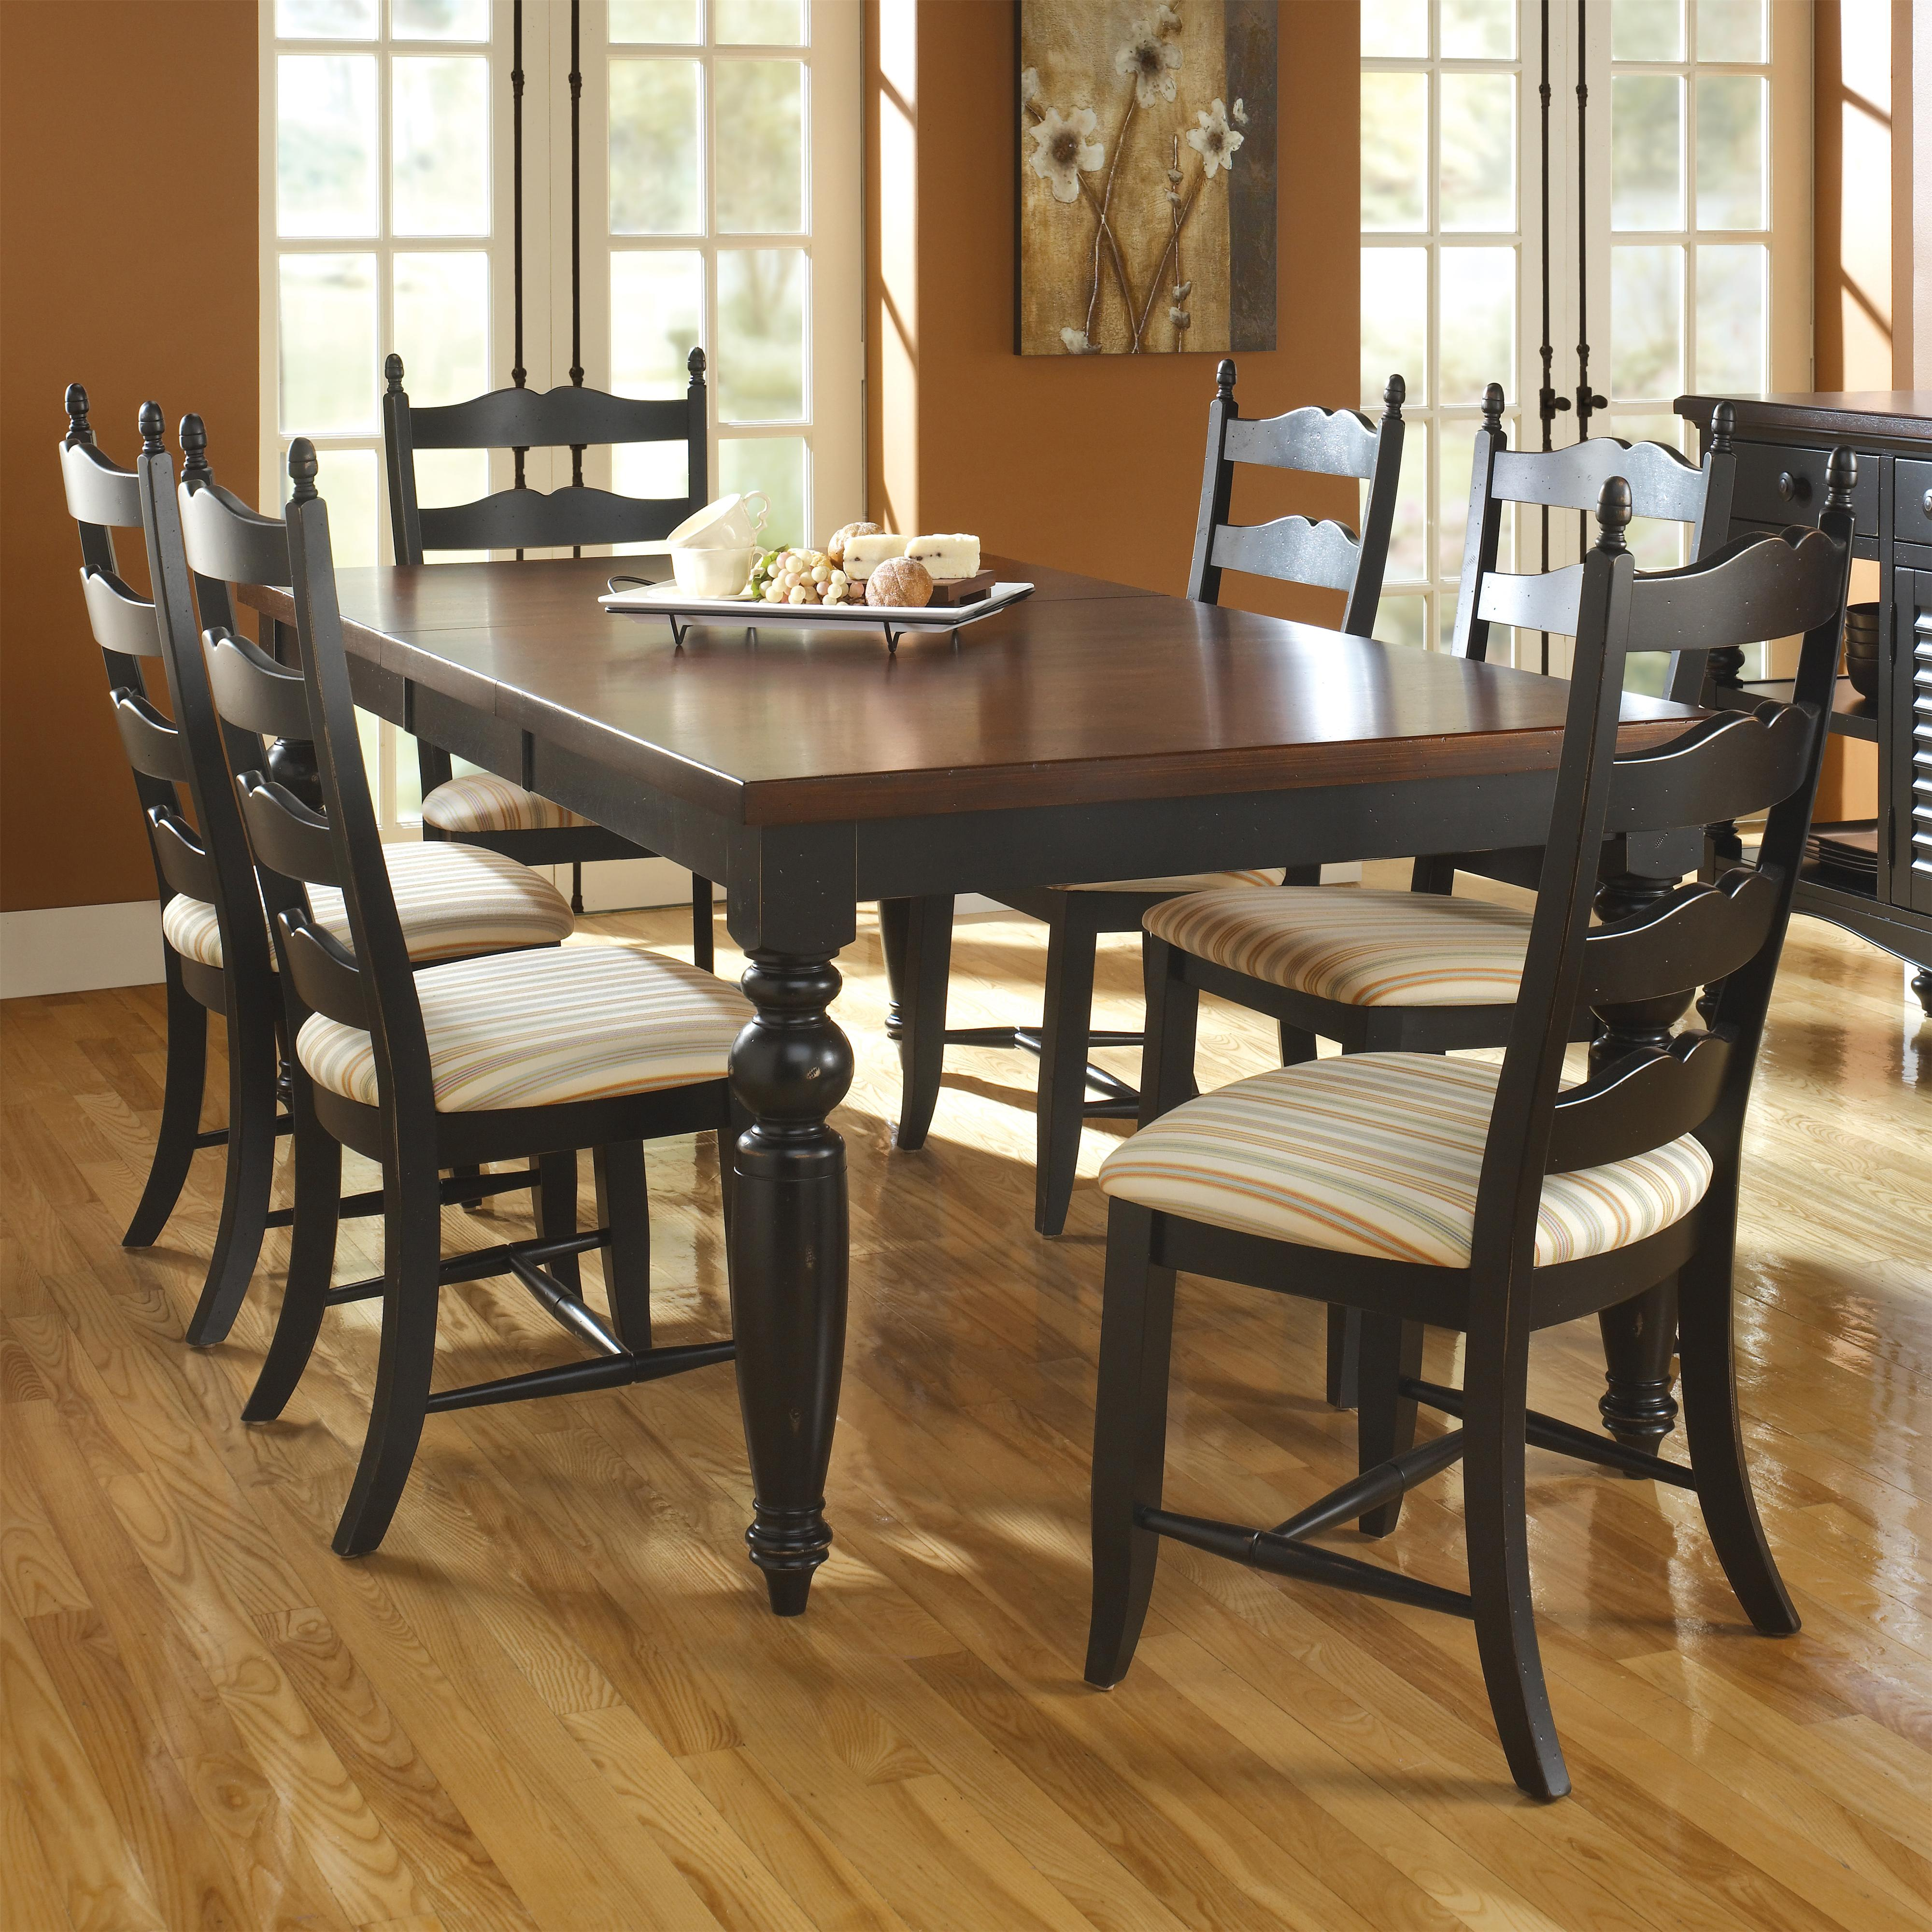 canadel custom dining customizable rectangular table set with 6 chairs becker furniture world. Black Bedroom Furniture Sets. Home Design Ideas